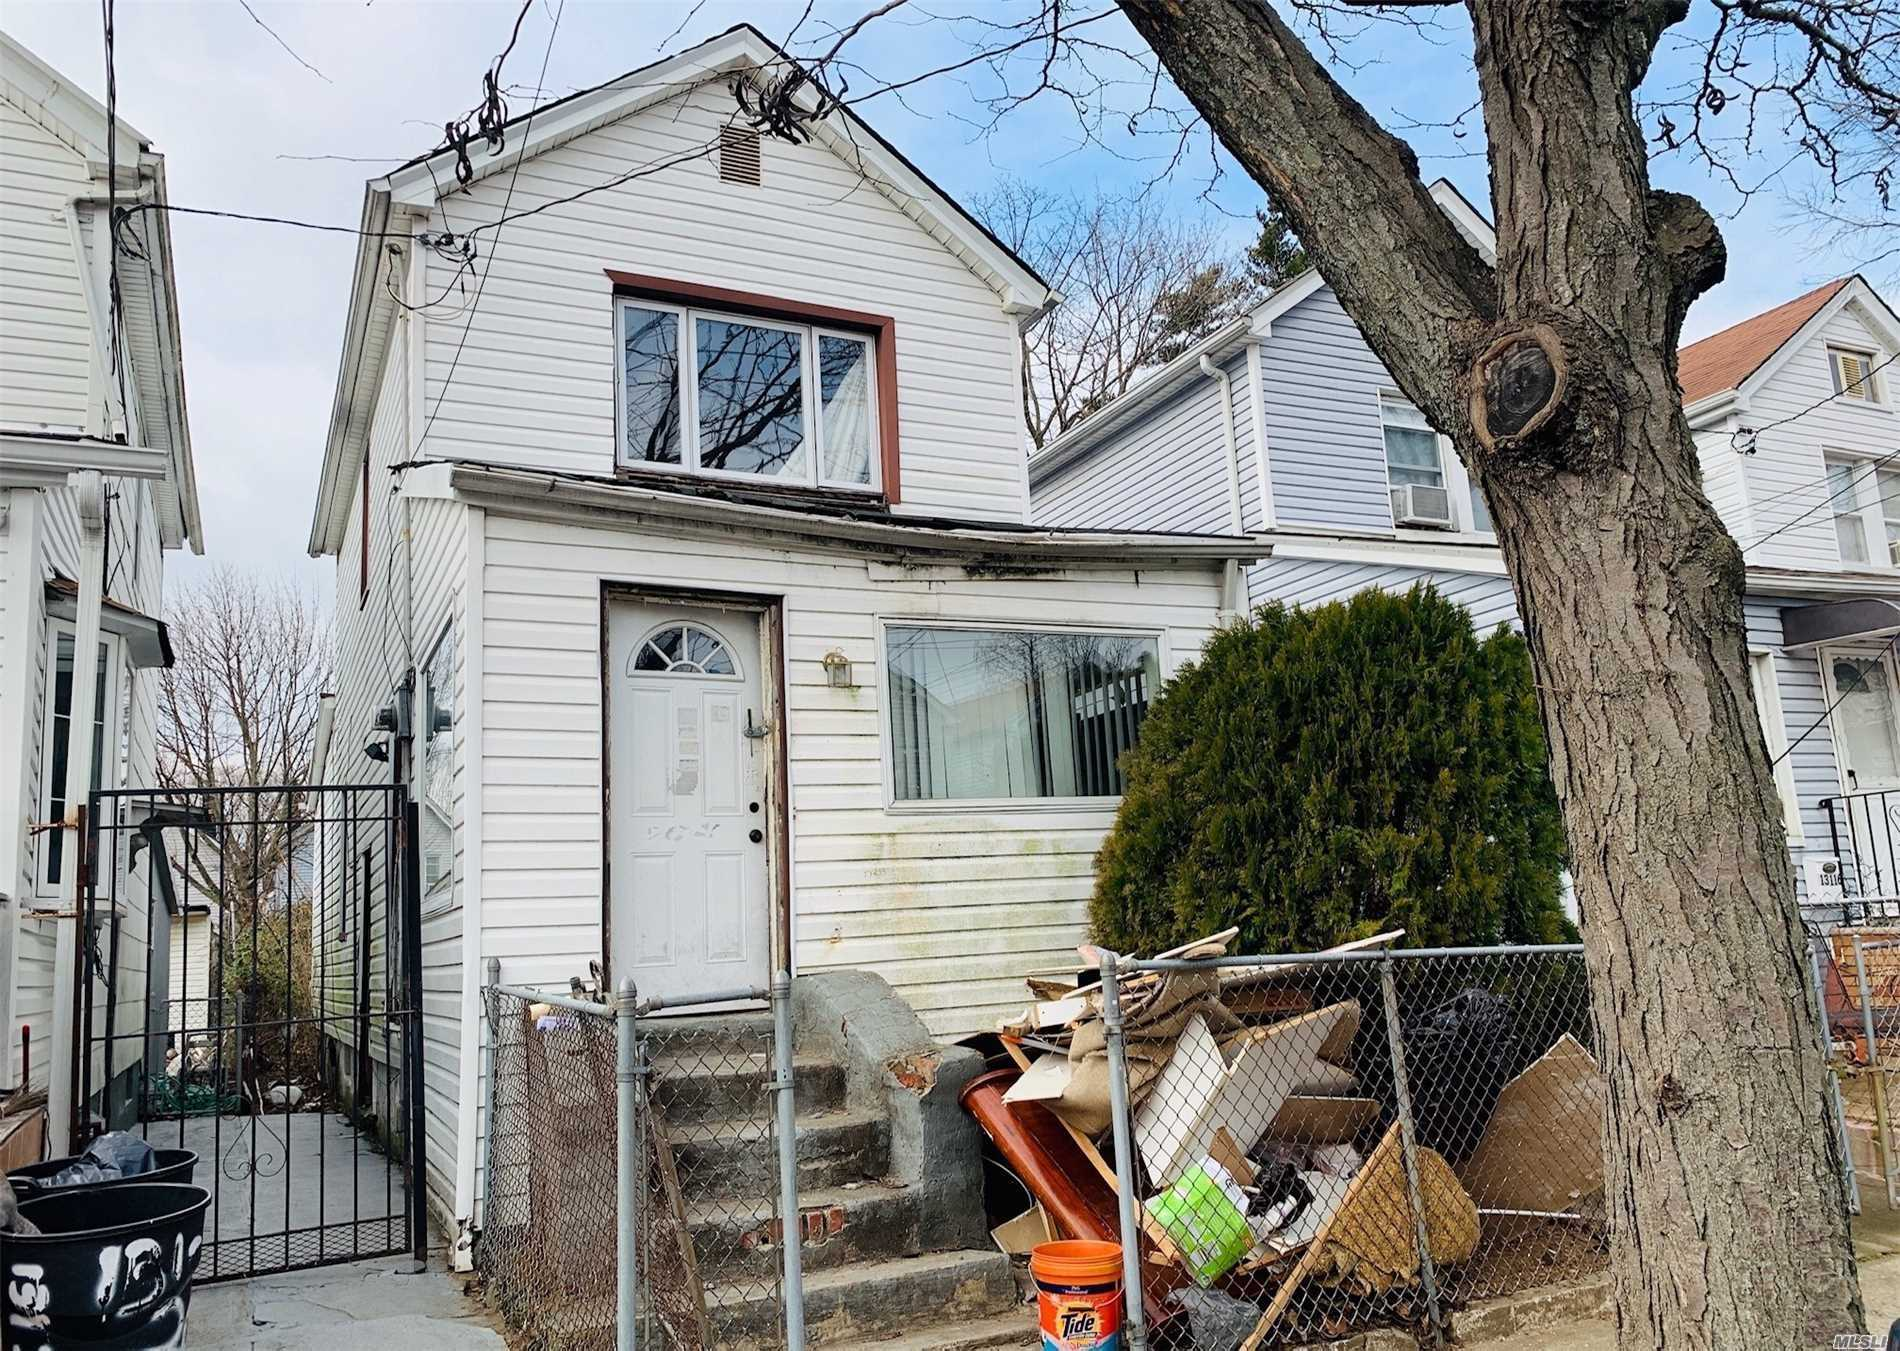 Opportunity Is Knocking! This 1 Family Detached, Colonial Features A Full Basement, Living Room, Kitchen, 2 Bedrooms And A Full Bath. This Property Has A Shared Driveway. It's Conveniently Located Near All Amenities. Don't Miss This Opportunity!